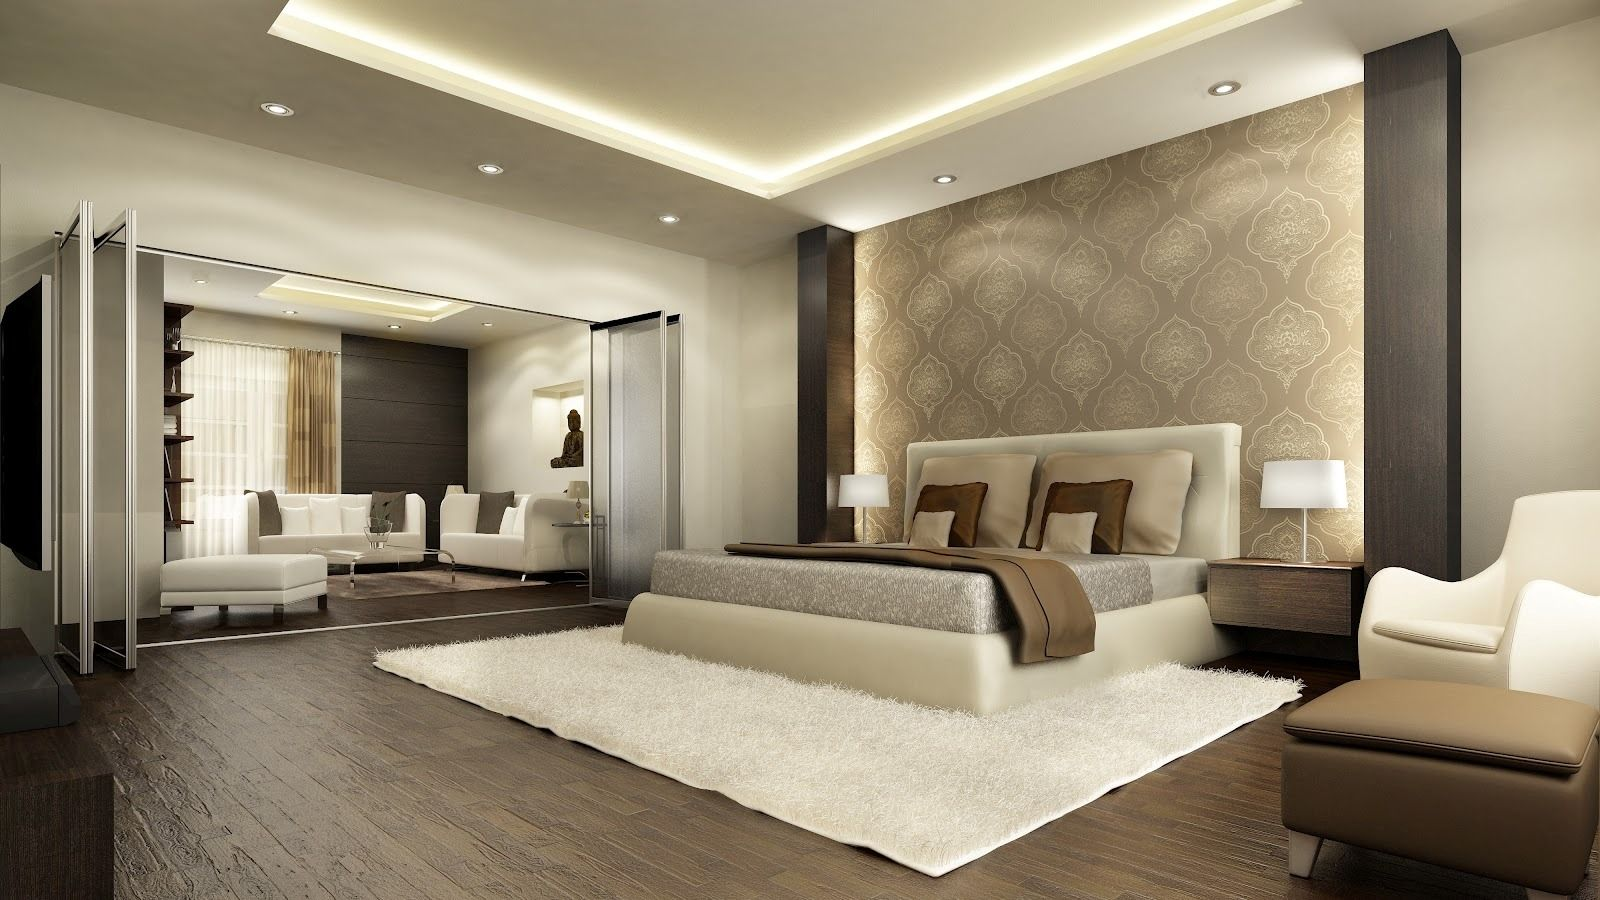 47 Luxury Master Bedroom Decorating Ideas Pictures